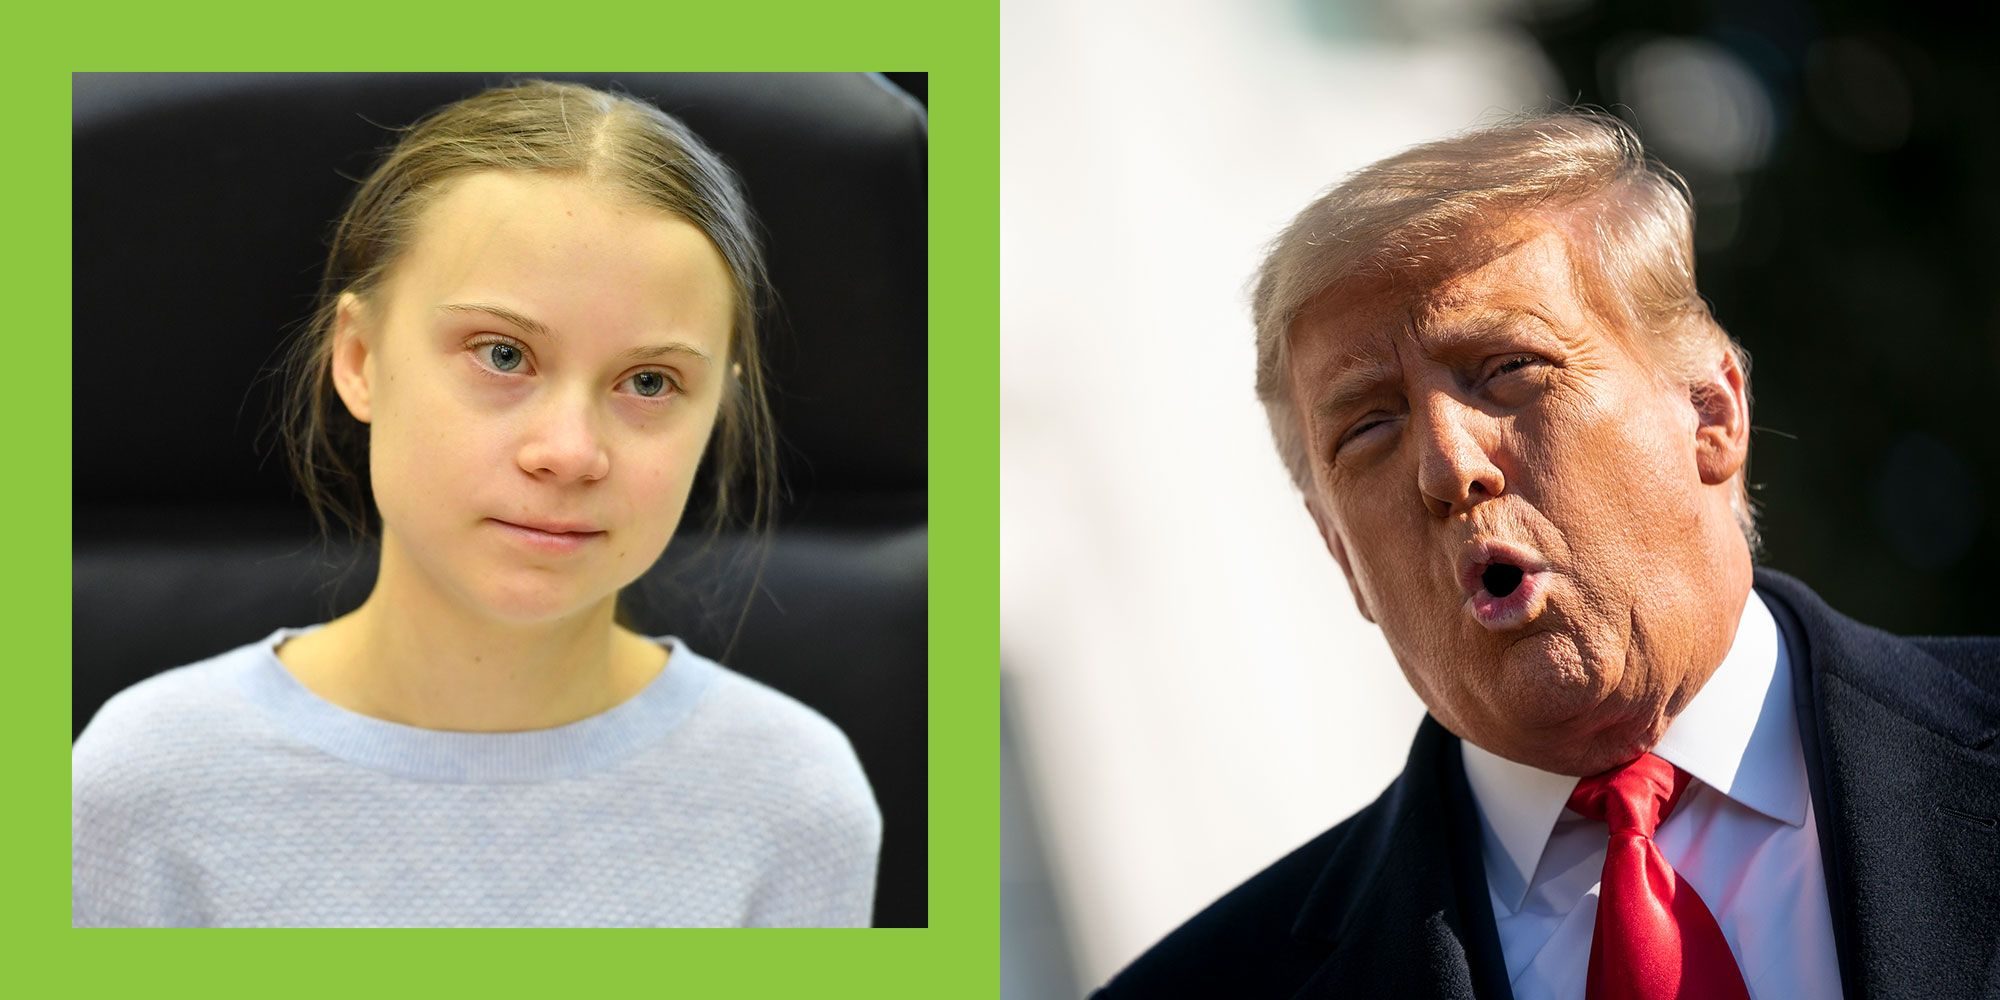 Greta Thunberg just burned Donald Trump in one final, epic way